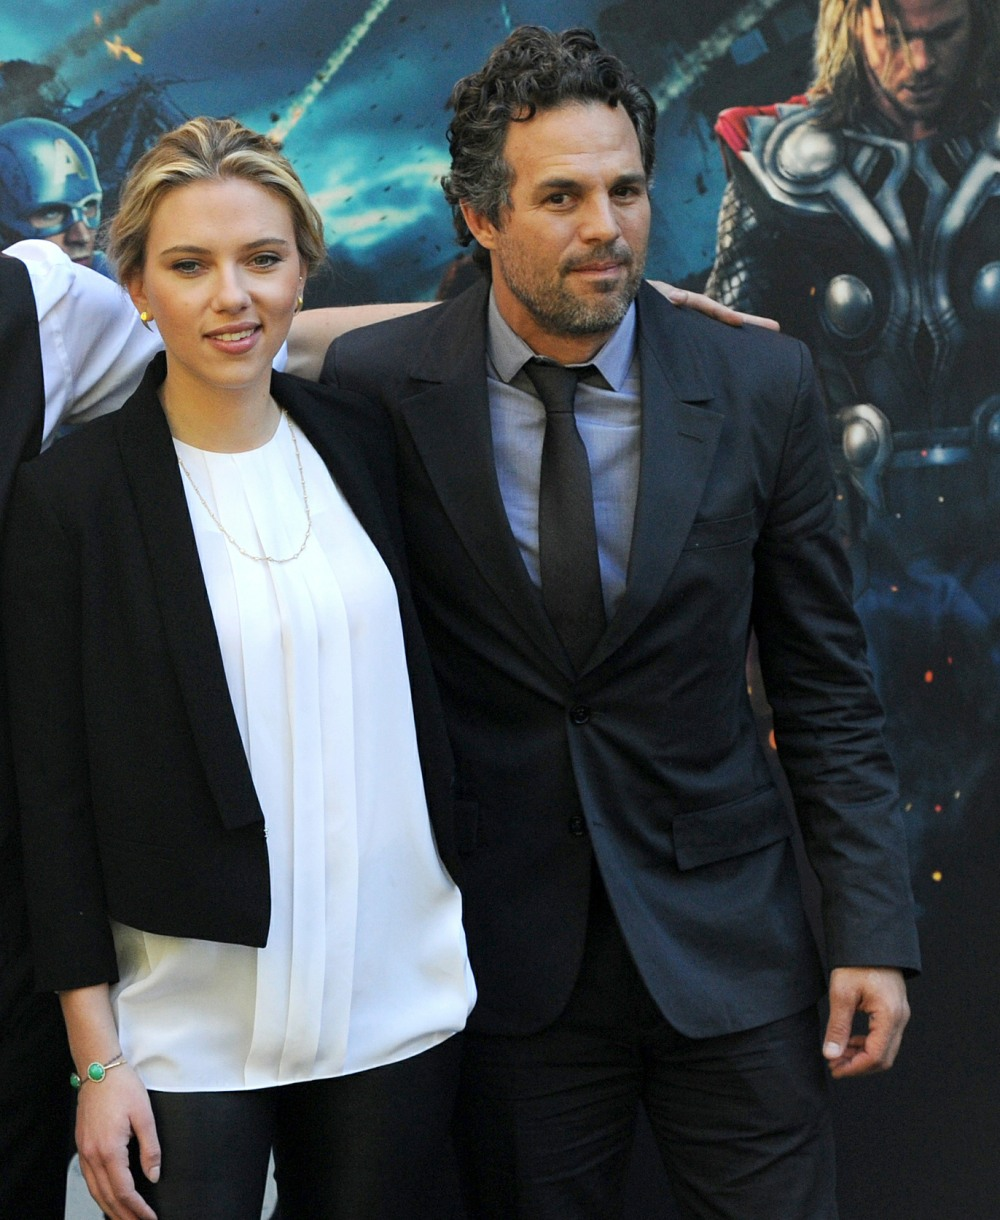 Photocall of the film 'The Avengers' in Rome.